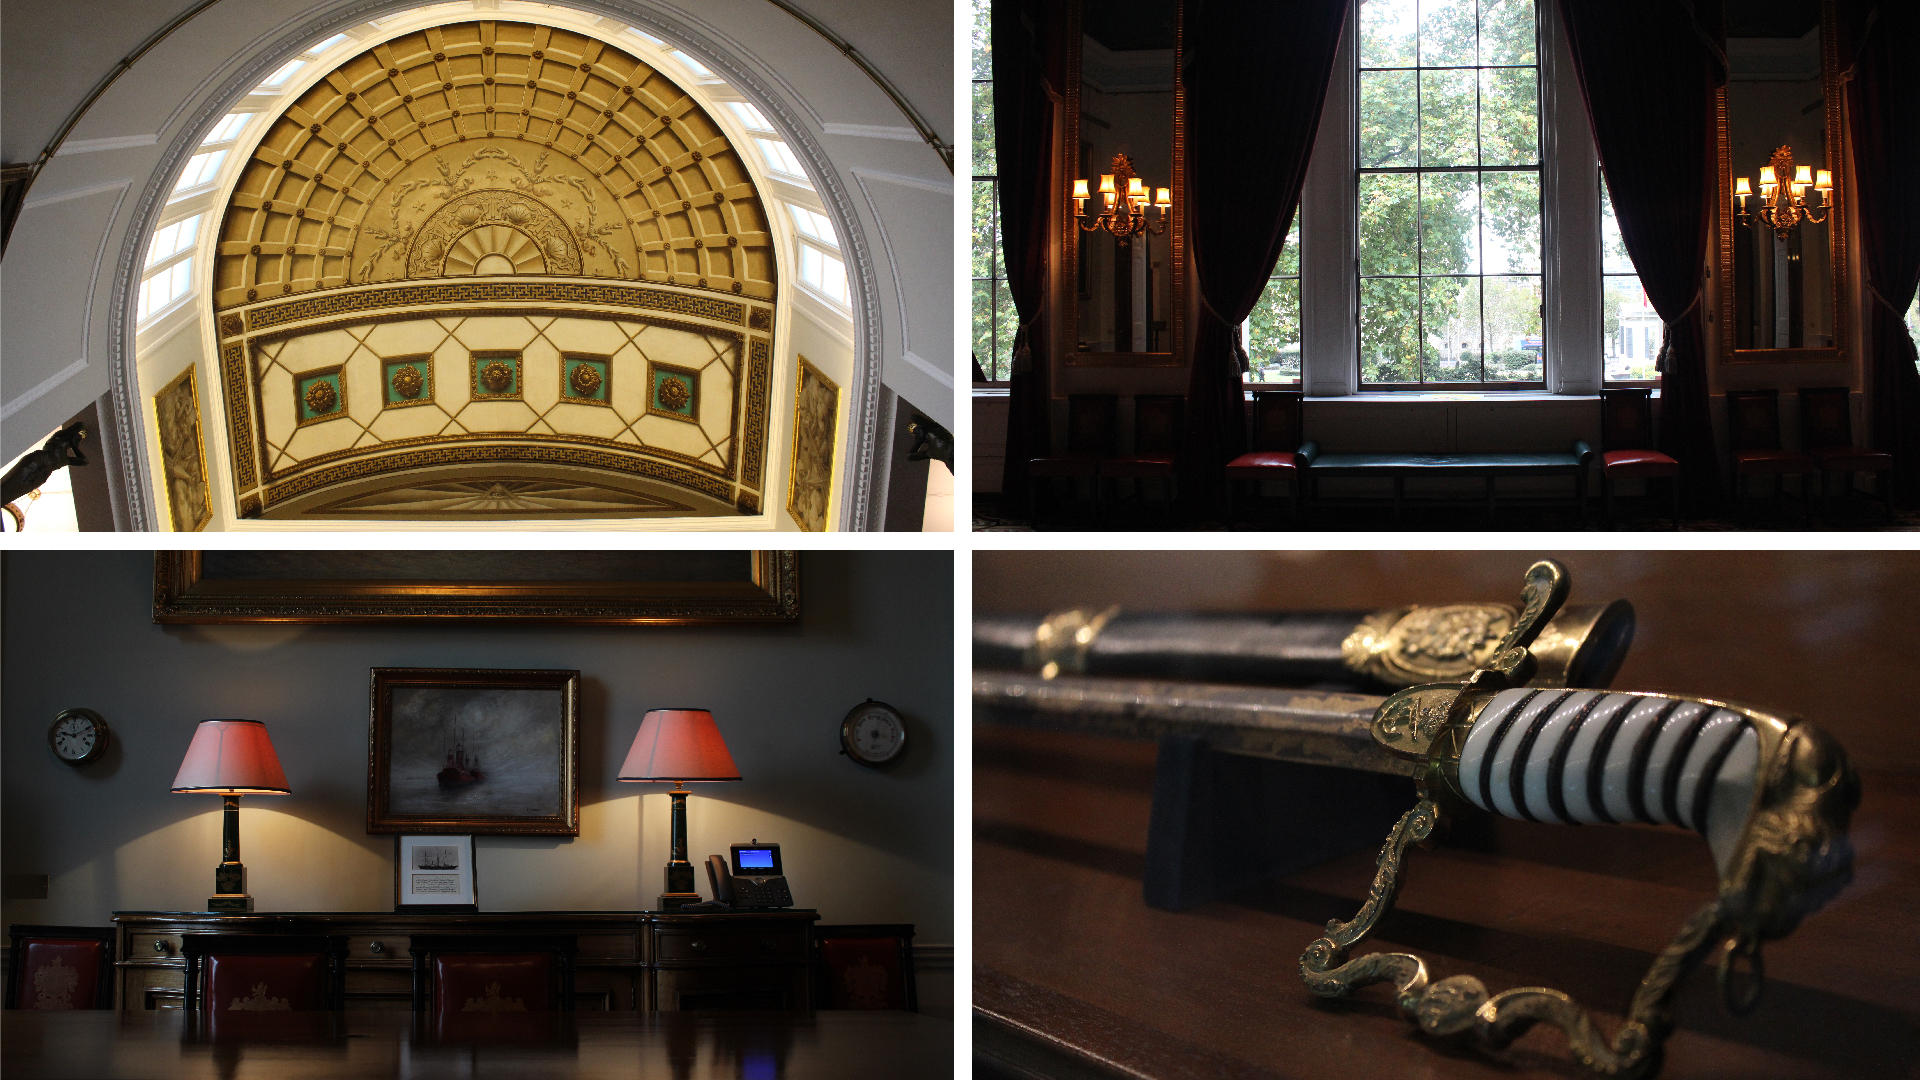 Trinity House - BetterBrandBuilder™ DISCOVER - Site Visits and Research Trips